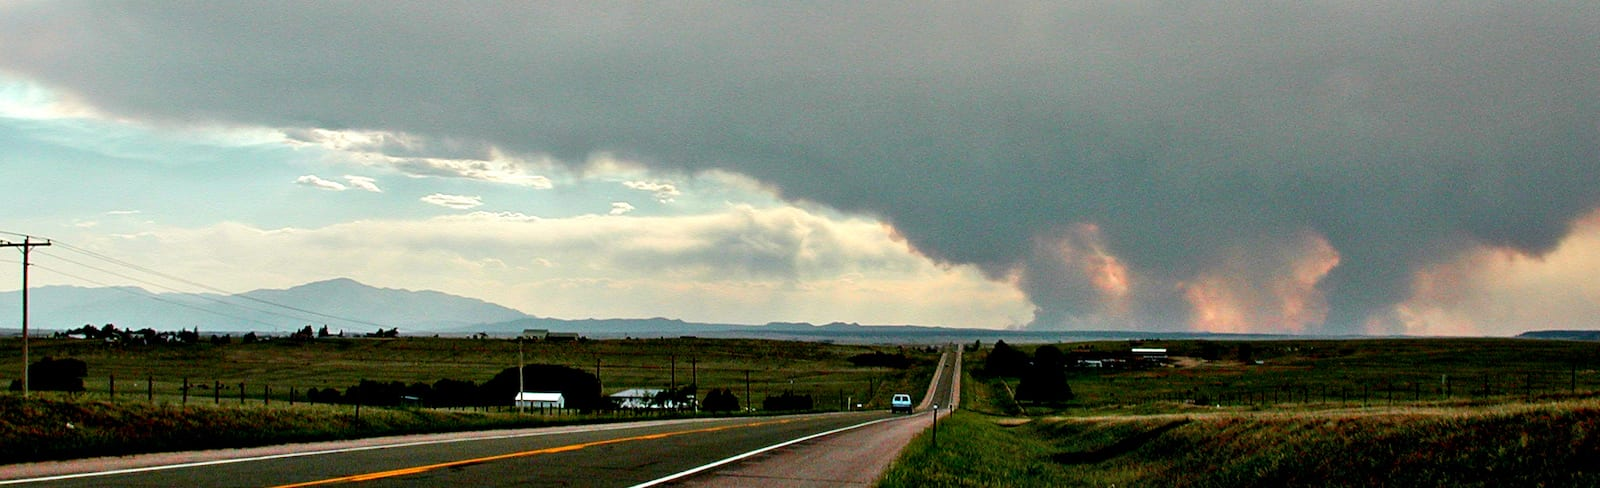 Hayman Fire 2002 Smoke View from Eastern Plains